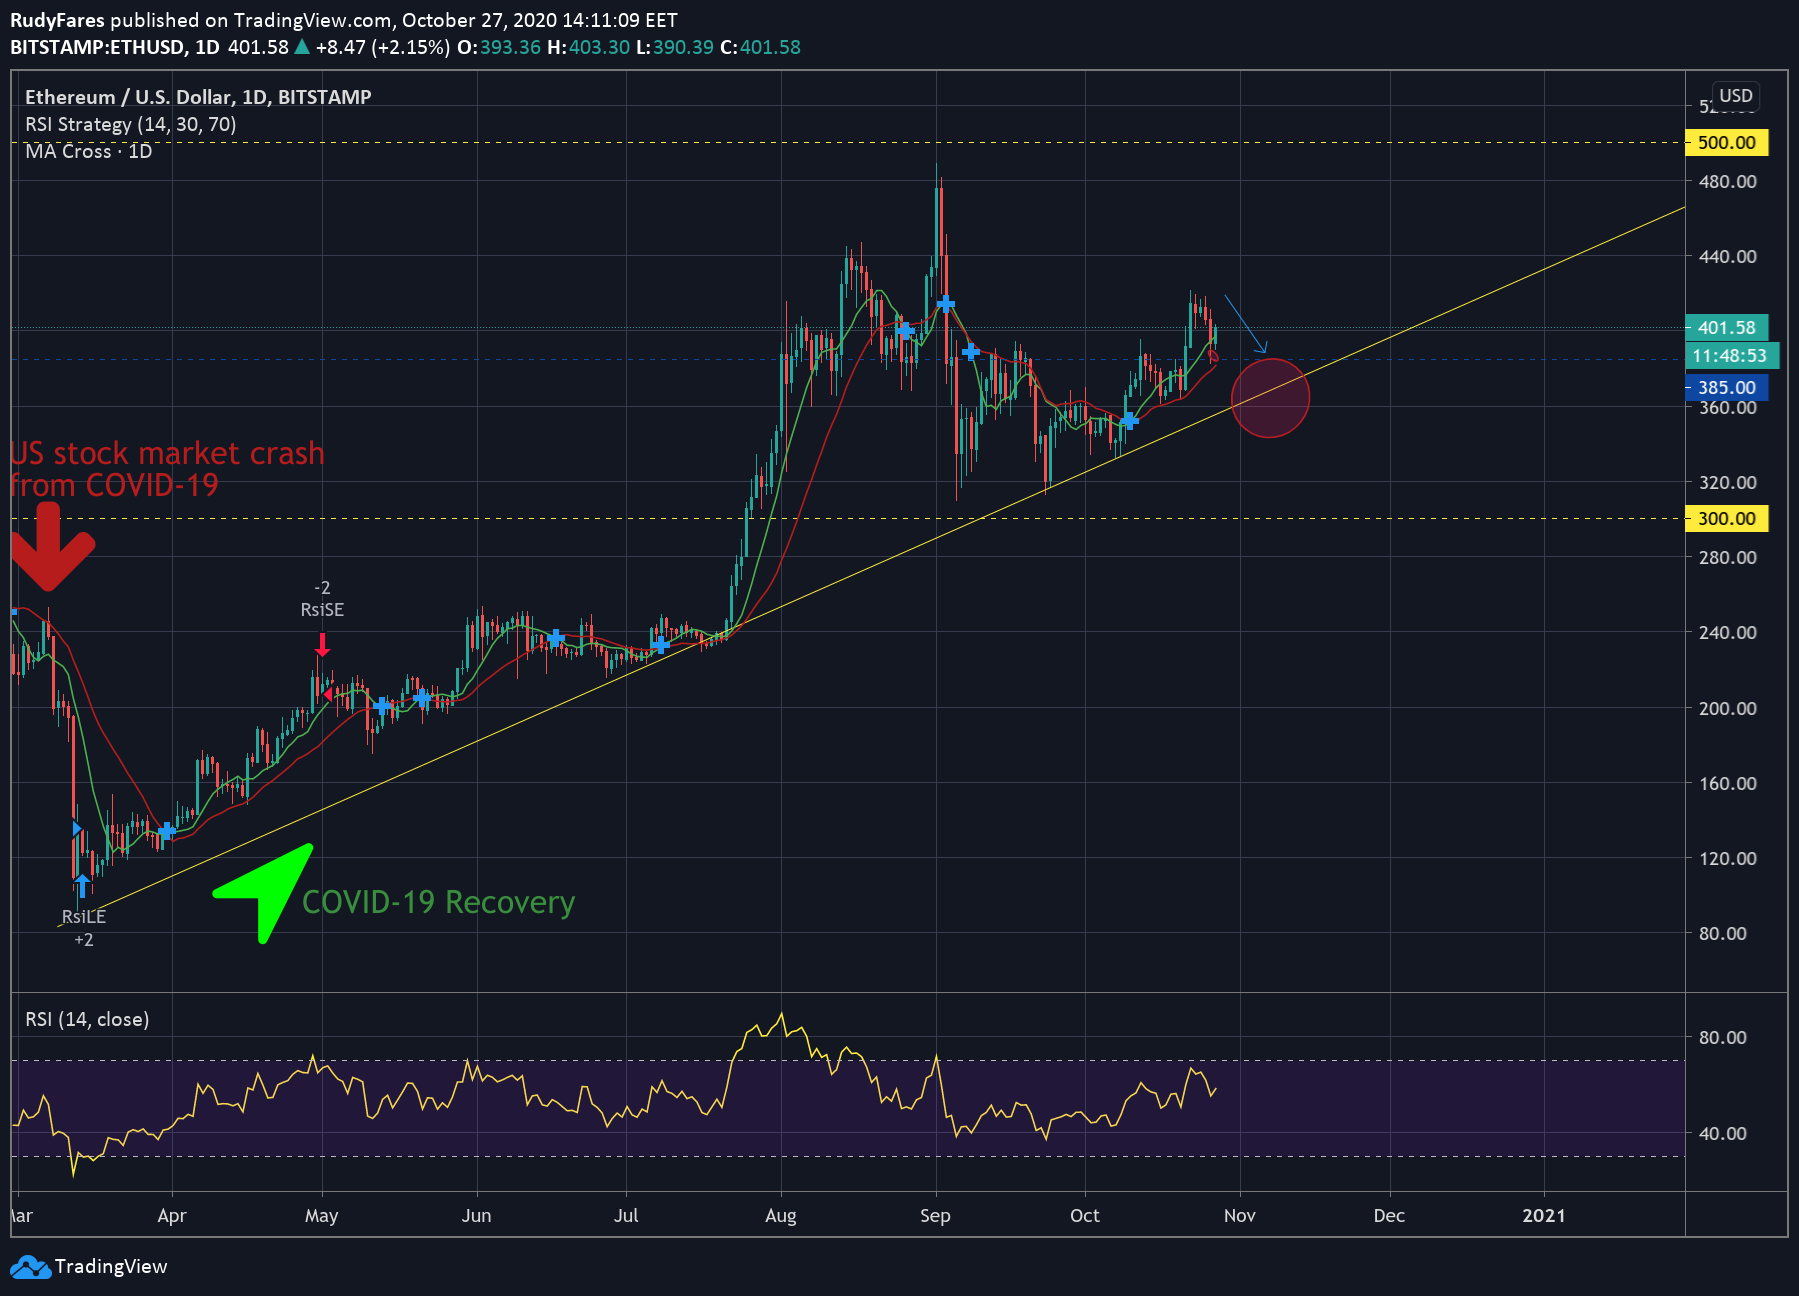 ETH/USD price 1D chart showing the long term uptrend of Ether